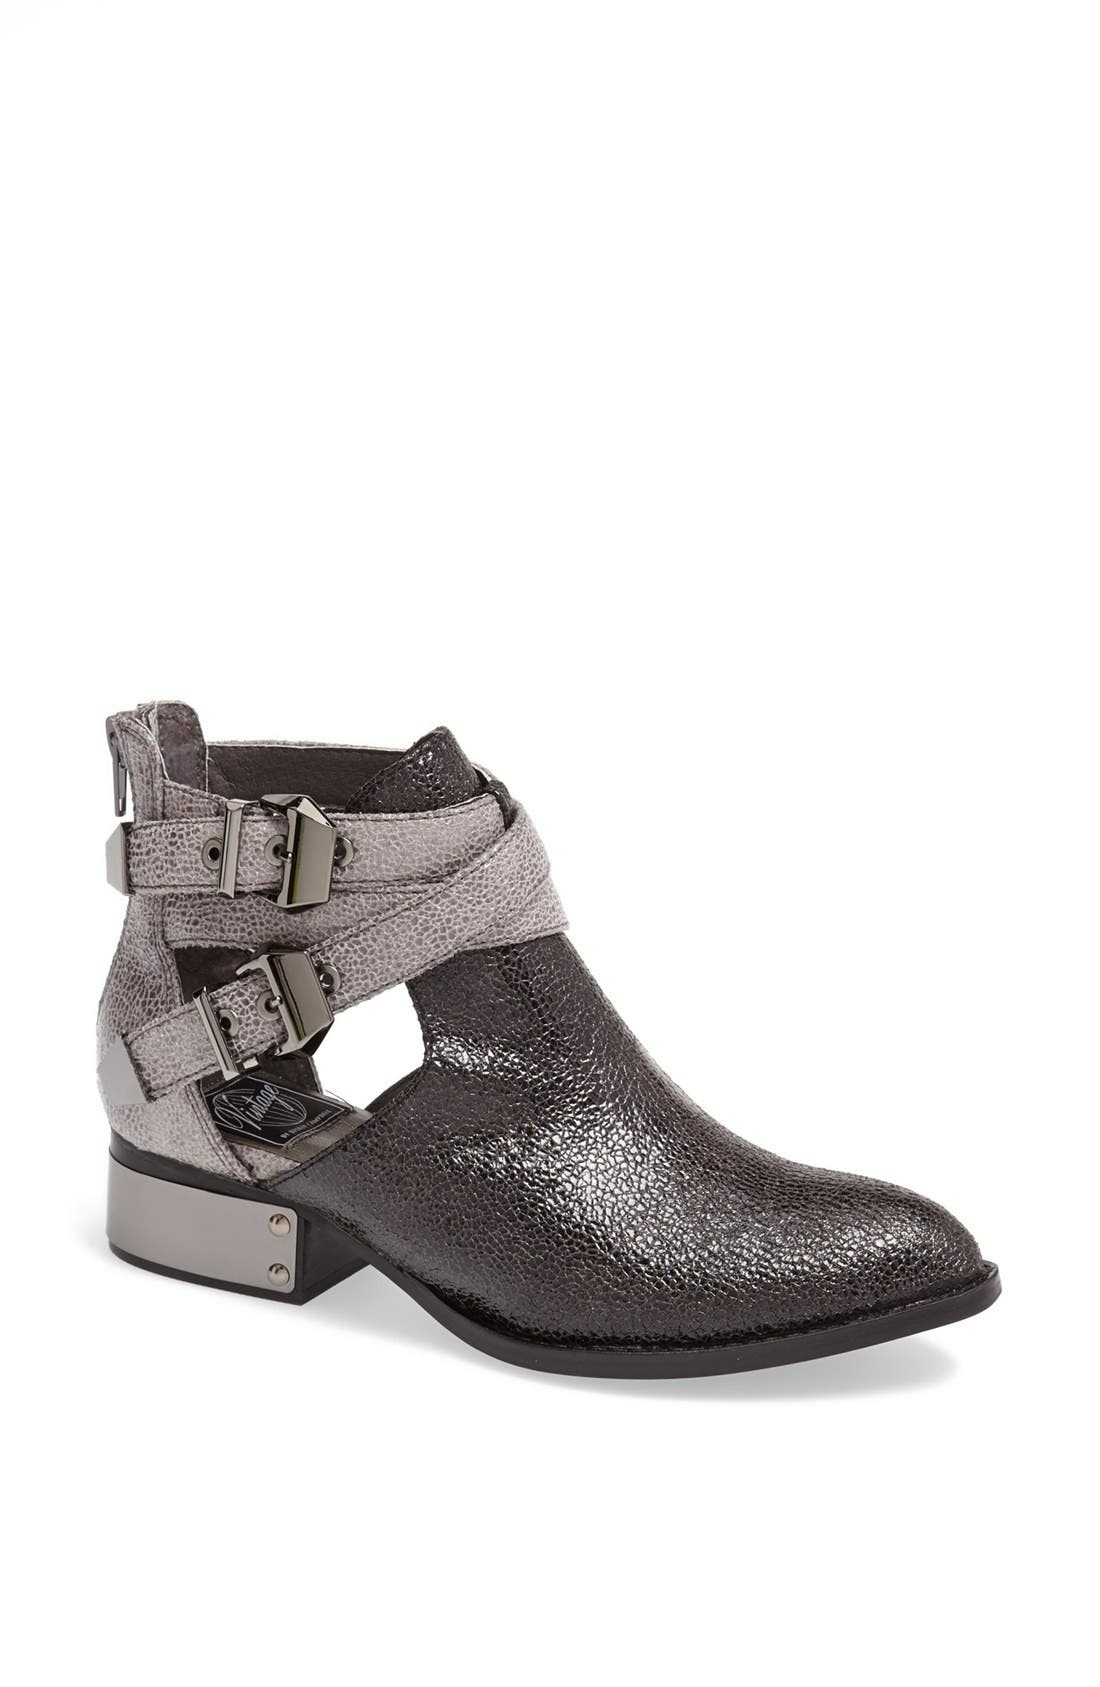 'Everly' Bootie,                         Main,                         color, Grey Cracked Combo